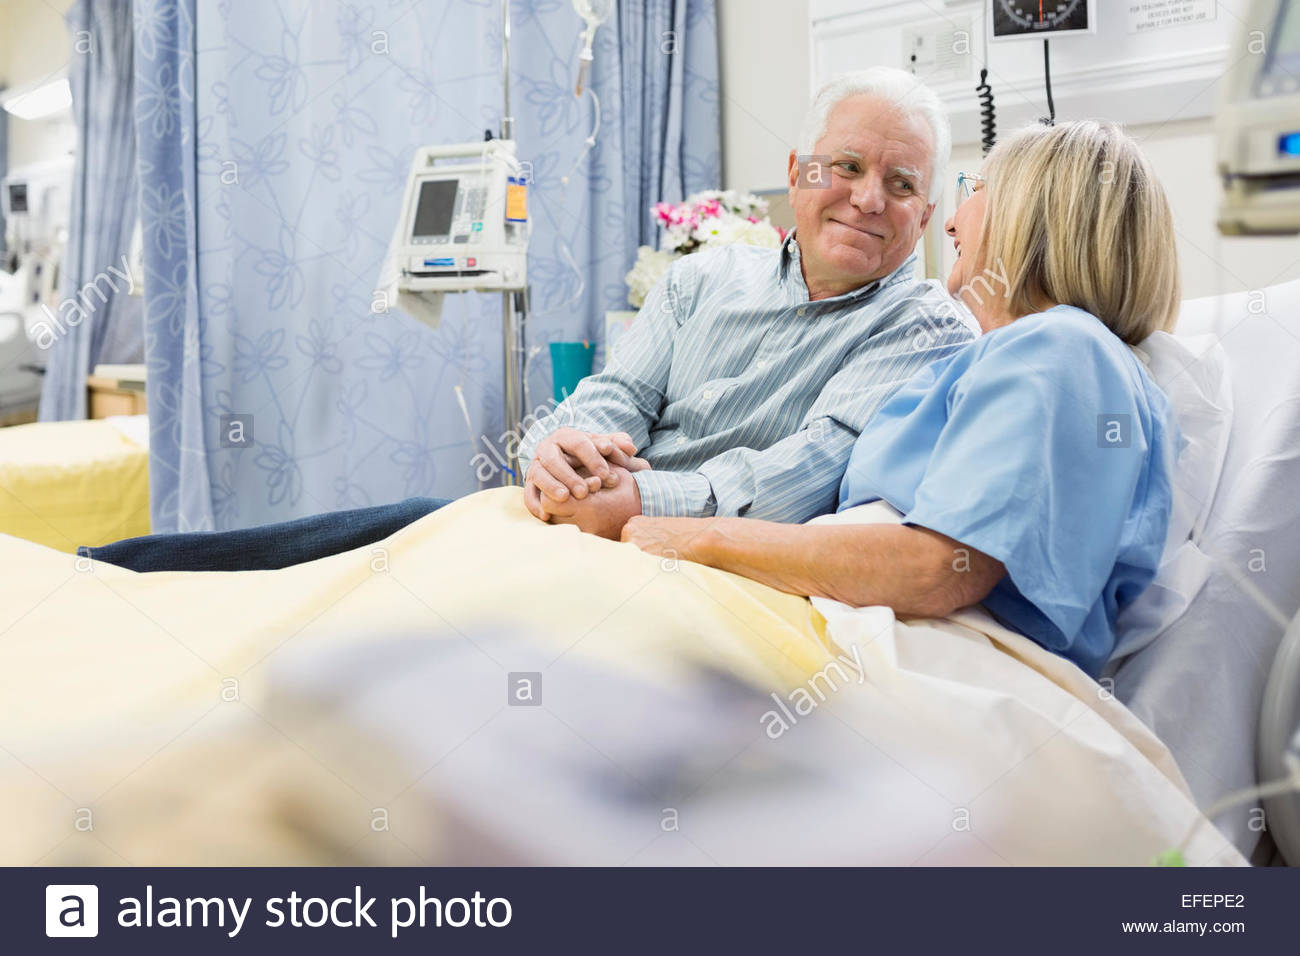 Husband and wife holding hands in hospital bed - Stock Image